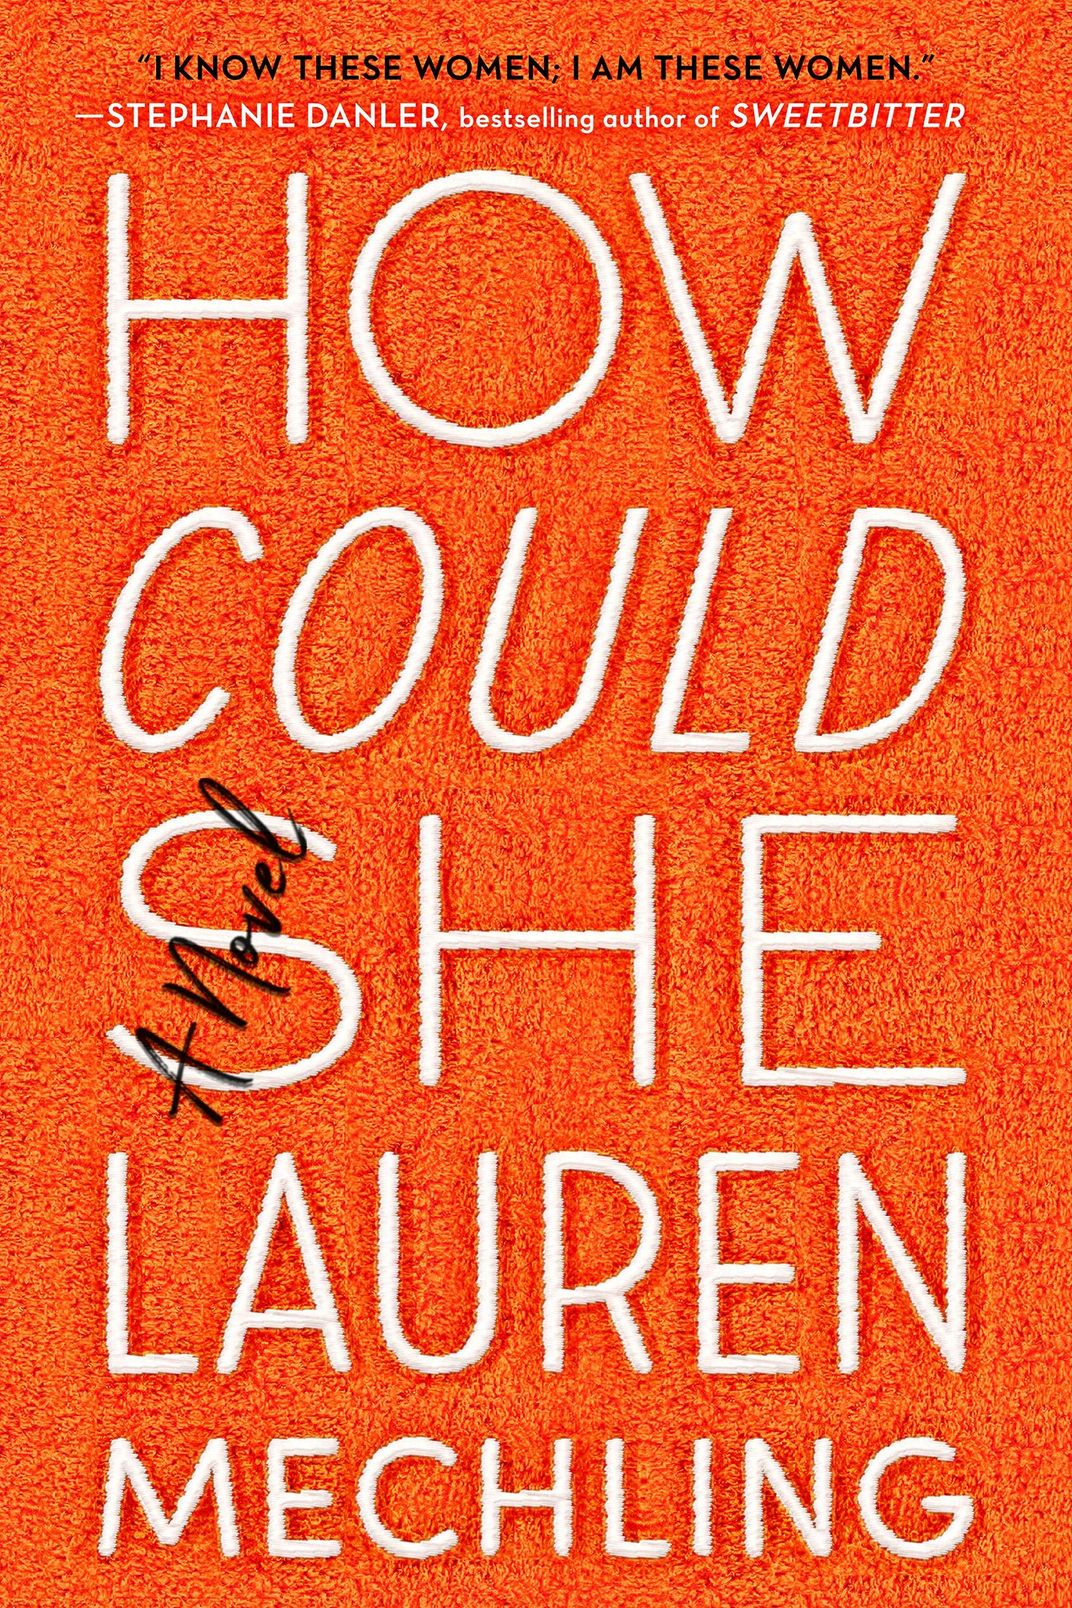 How Could She, by Lauren Mechling (Viking, June 25)